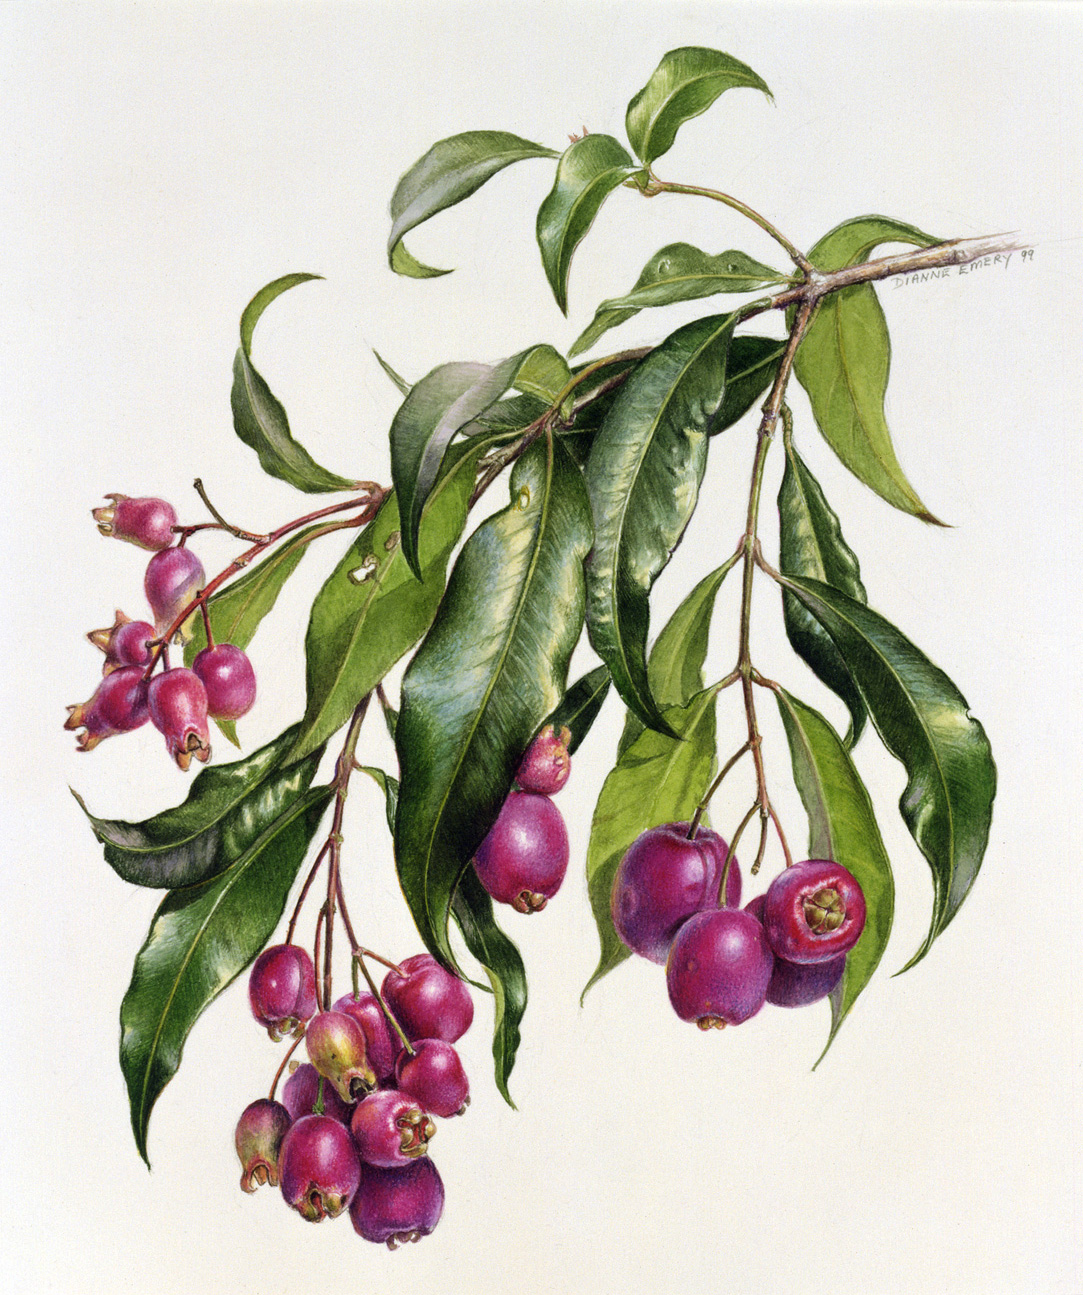 Botanical Art Workshop